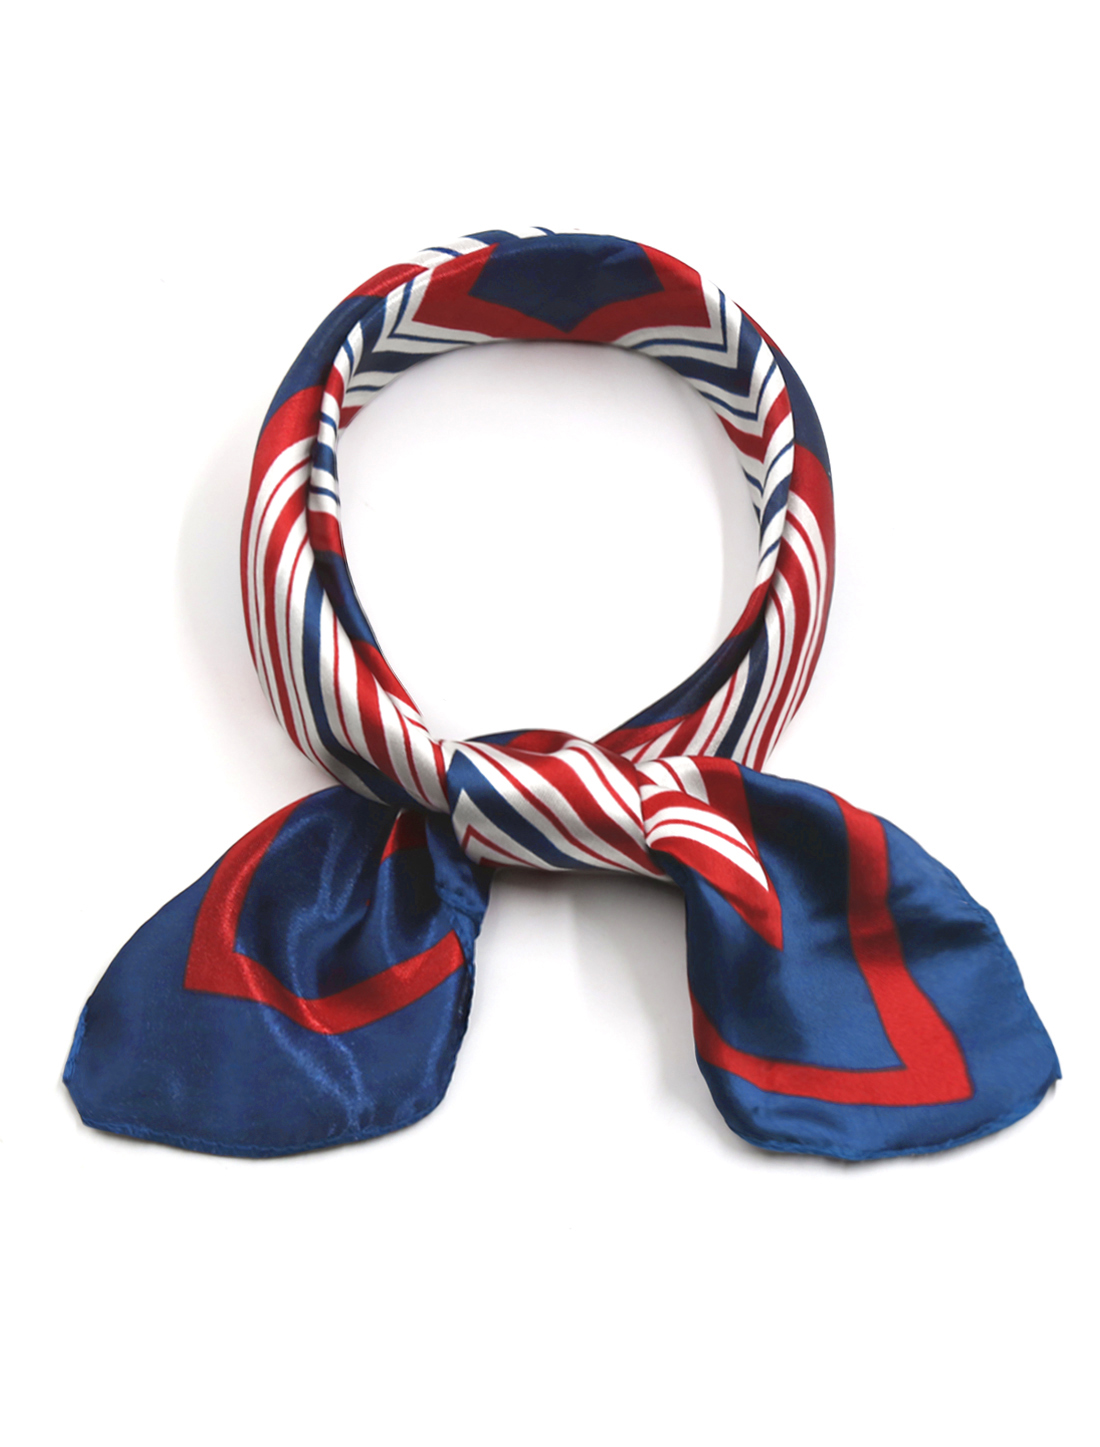 Ladies Geometric Prints Square Shaped Neck Scarf Red Blue